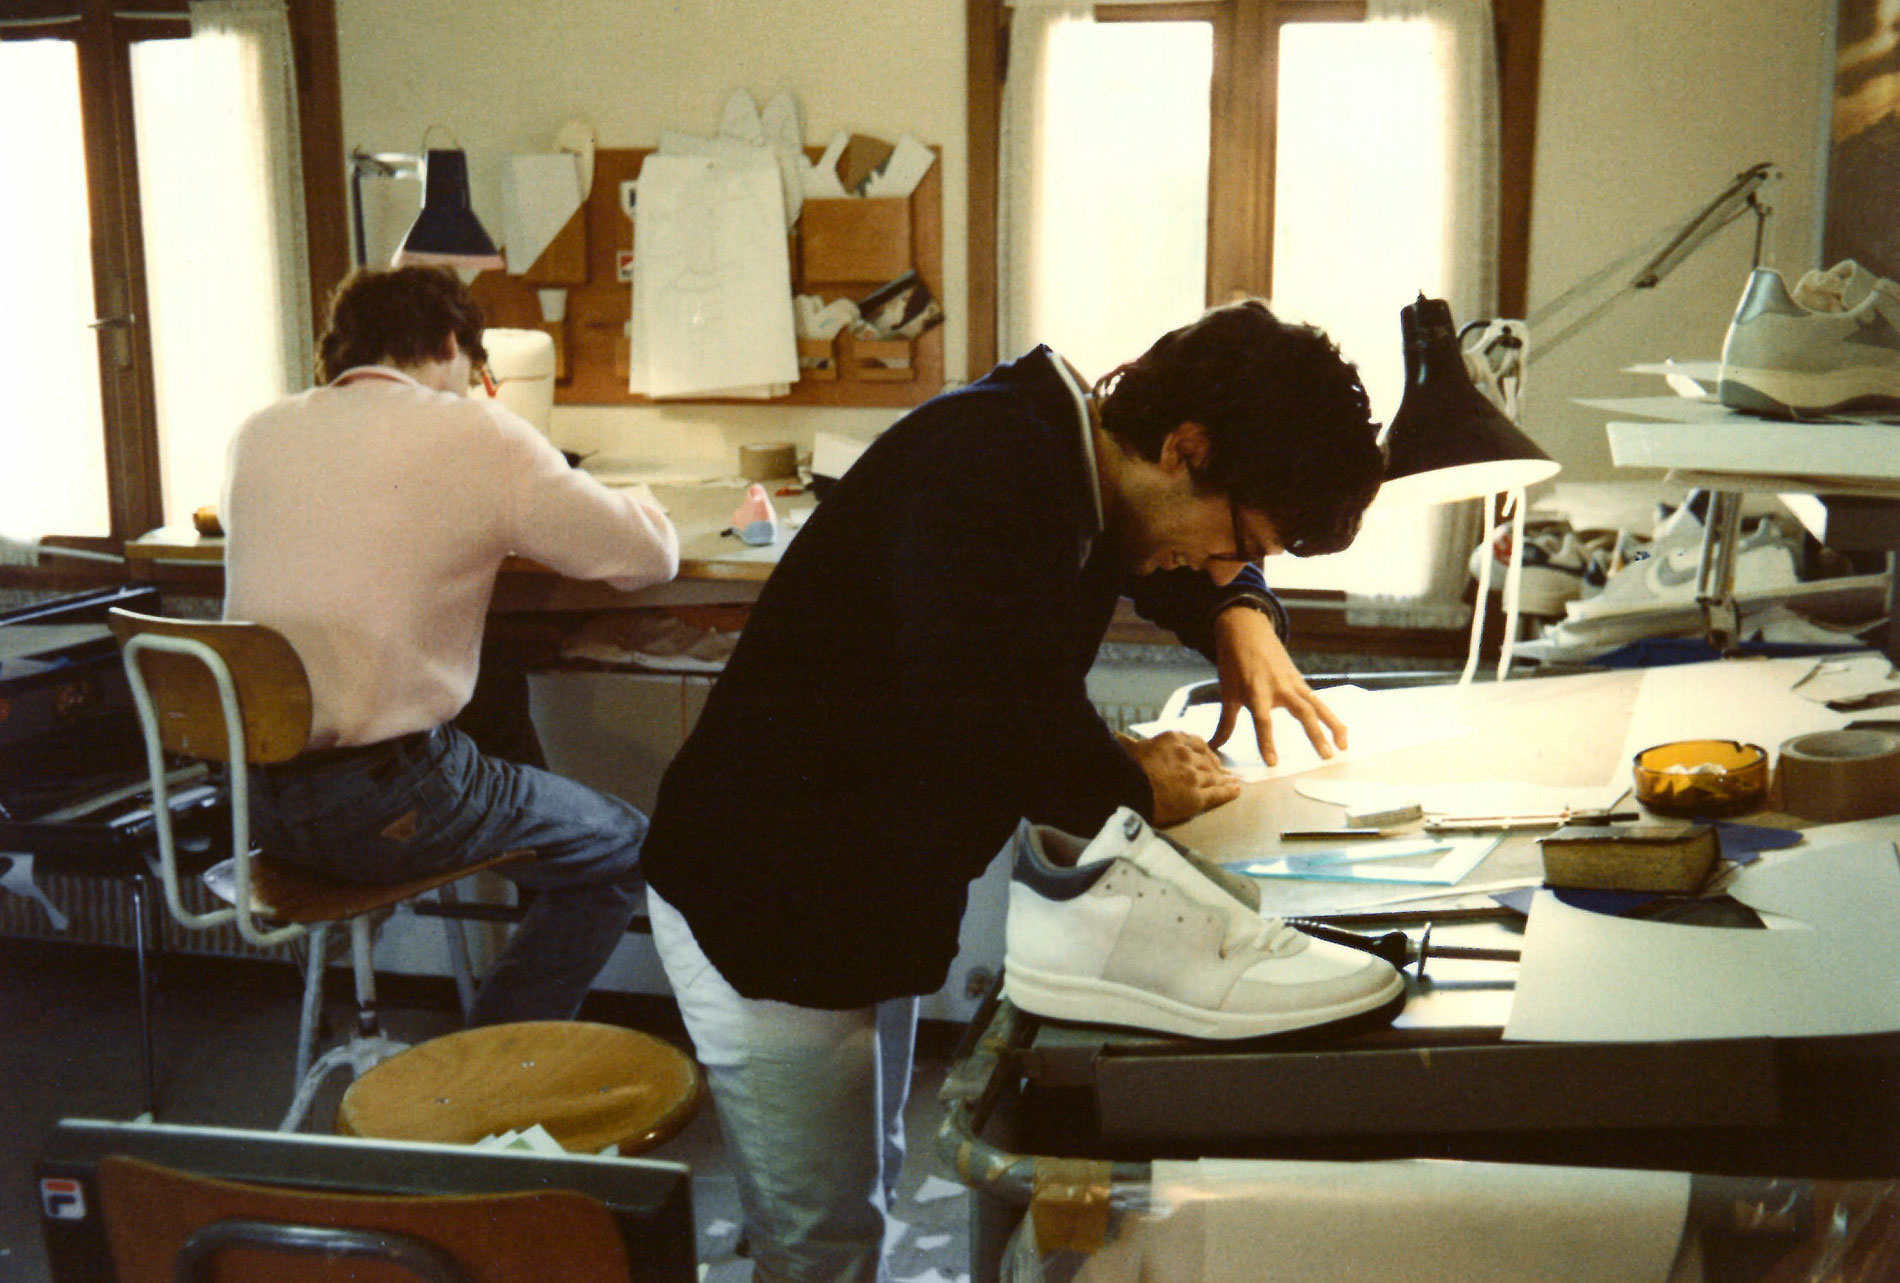 <span><b>1979</b>Claudio Franco starts working for sport style, his brother's company where he learns shoe design and pattern engineering. </span>